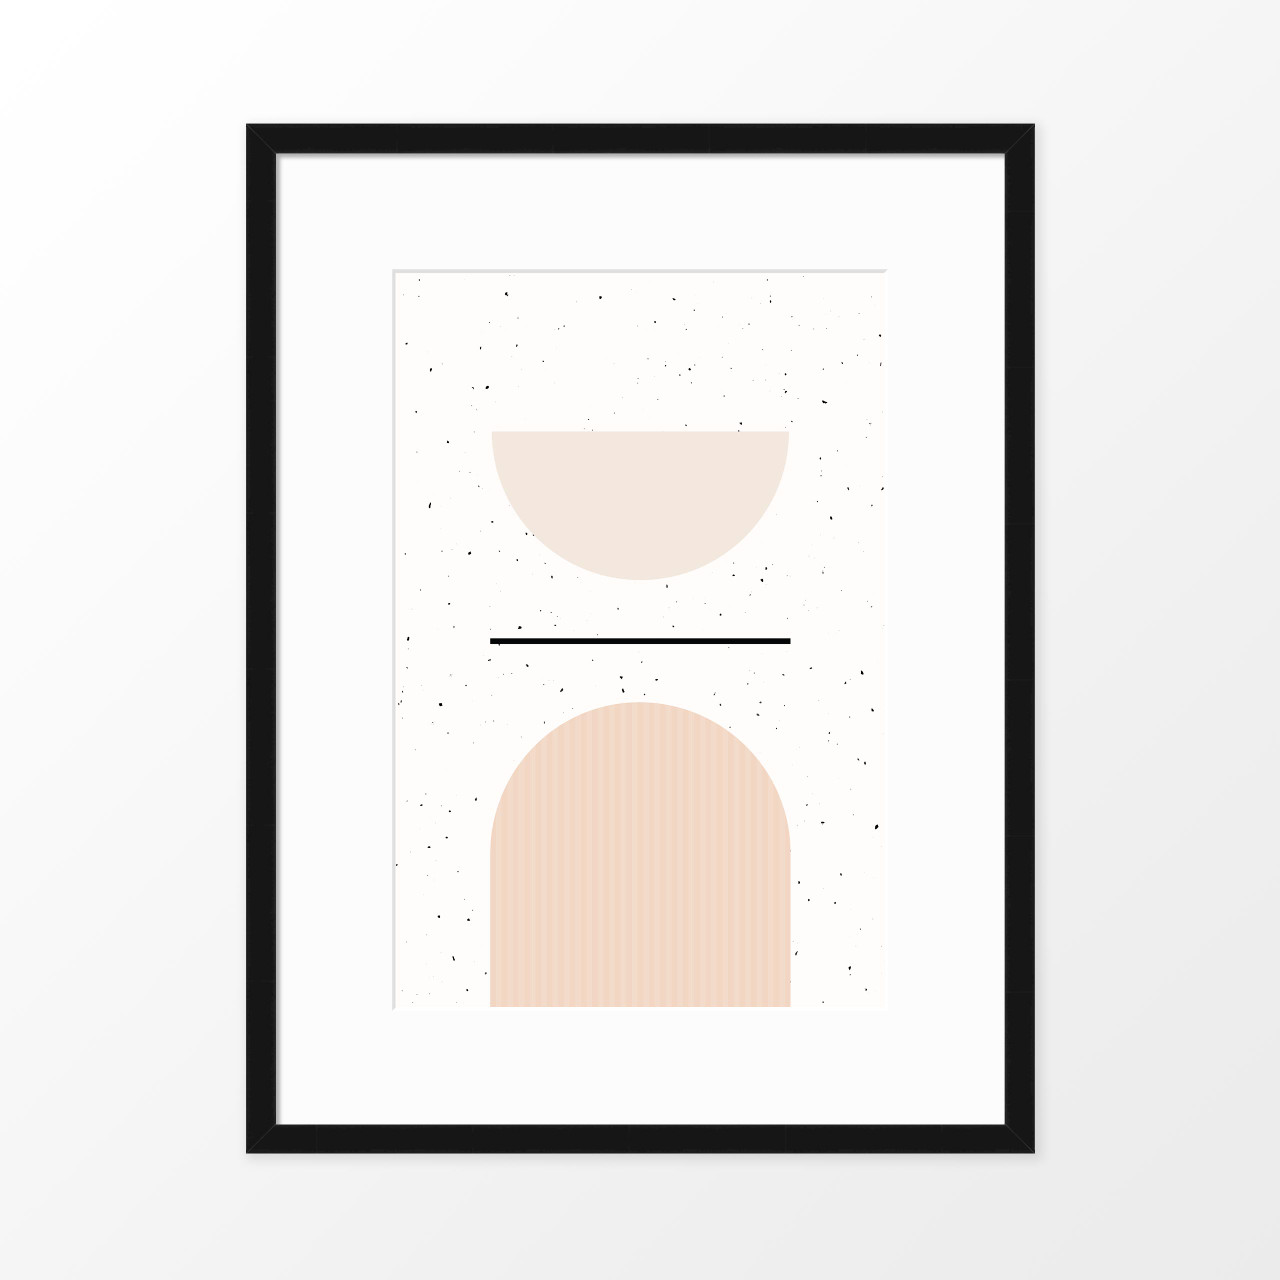 'Speckled I' Minimalist Geometric Art Print from The Printed Home (Printable)